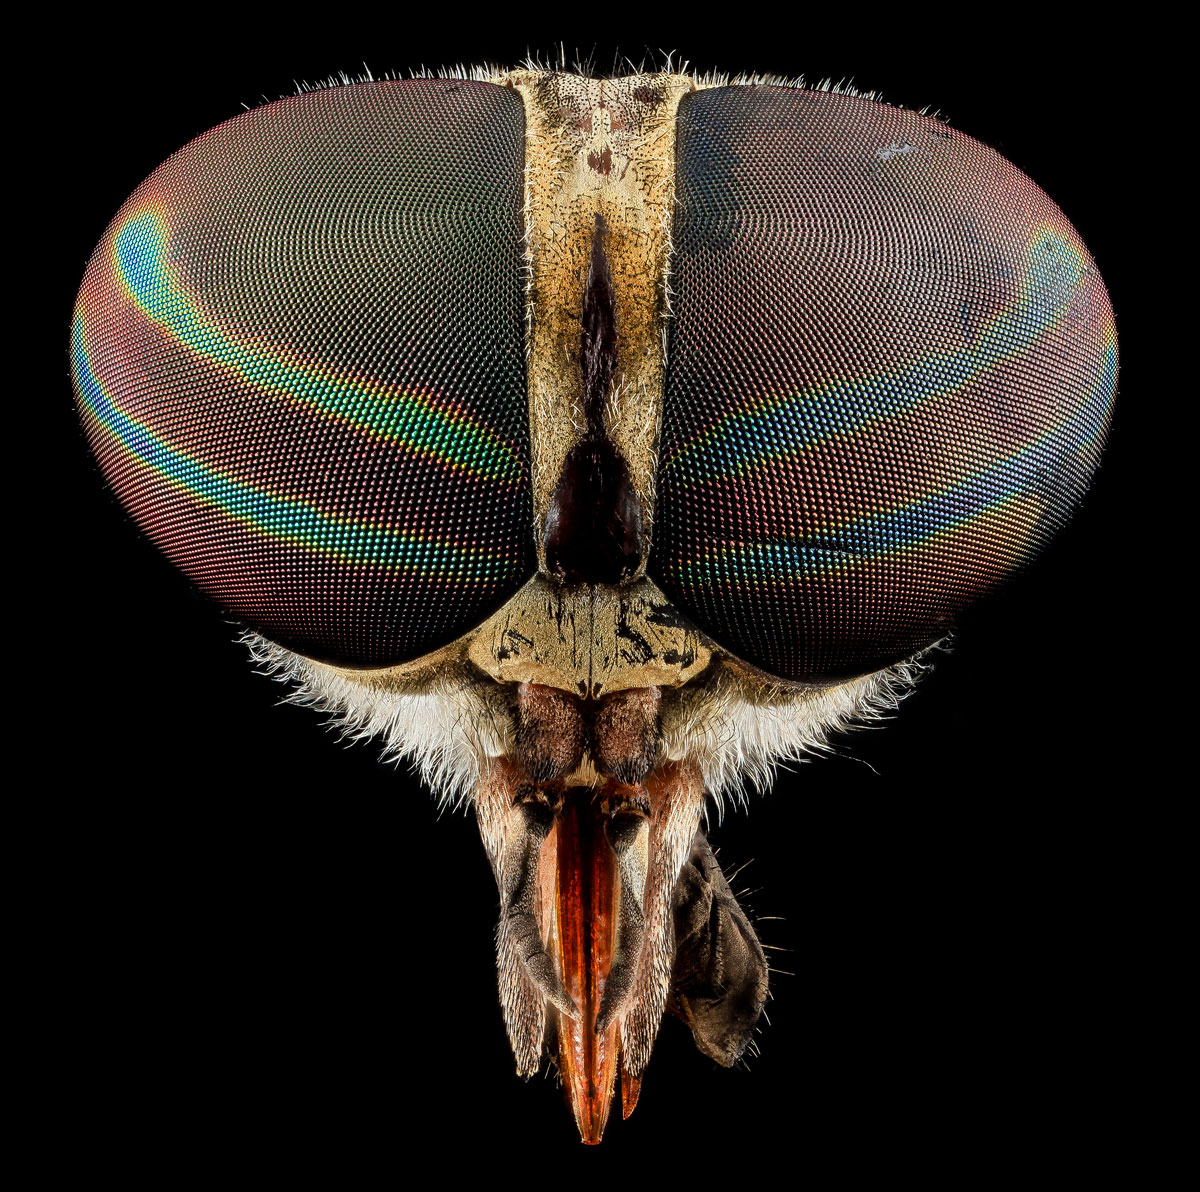 Close-Ups of Insect Eyes by usgs biml (6)